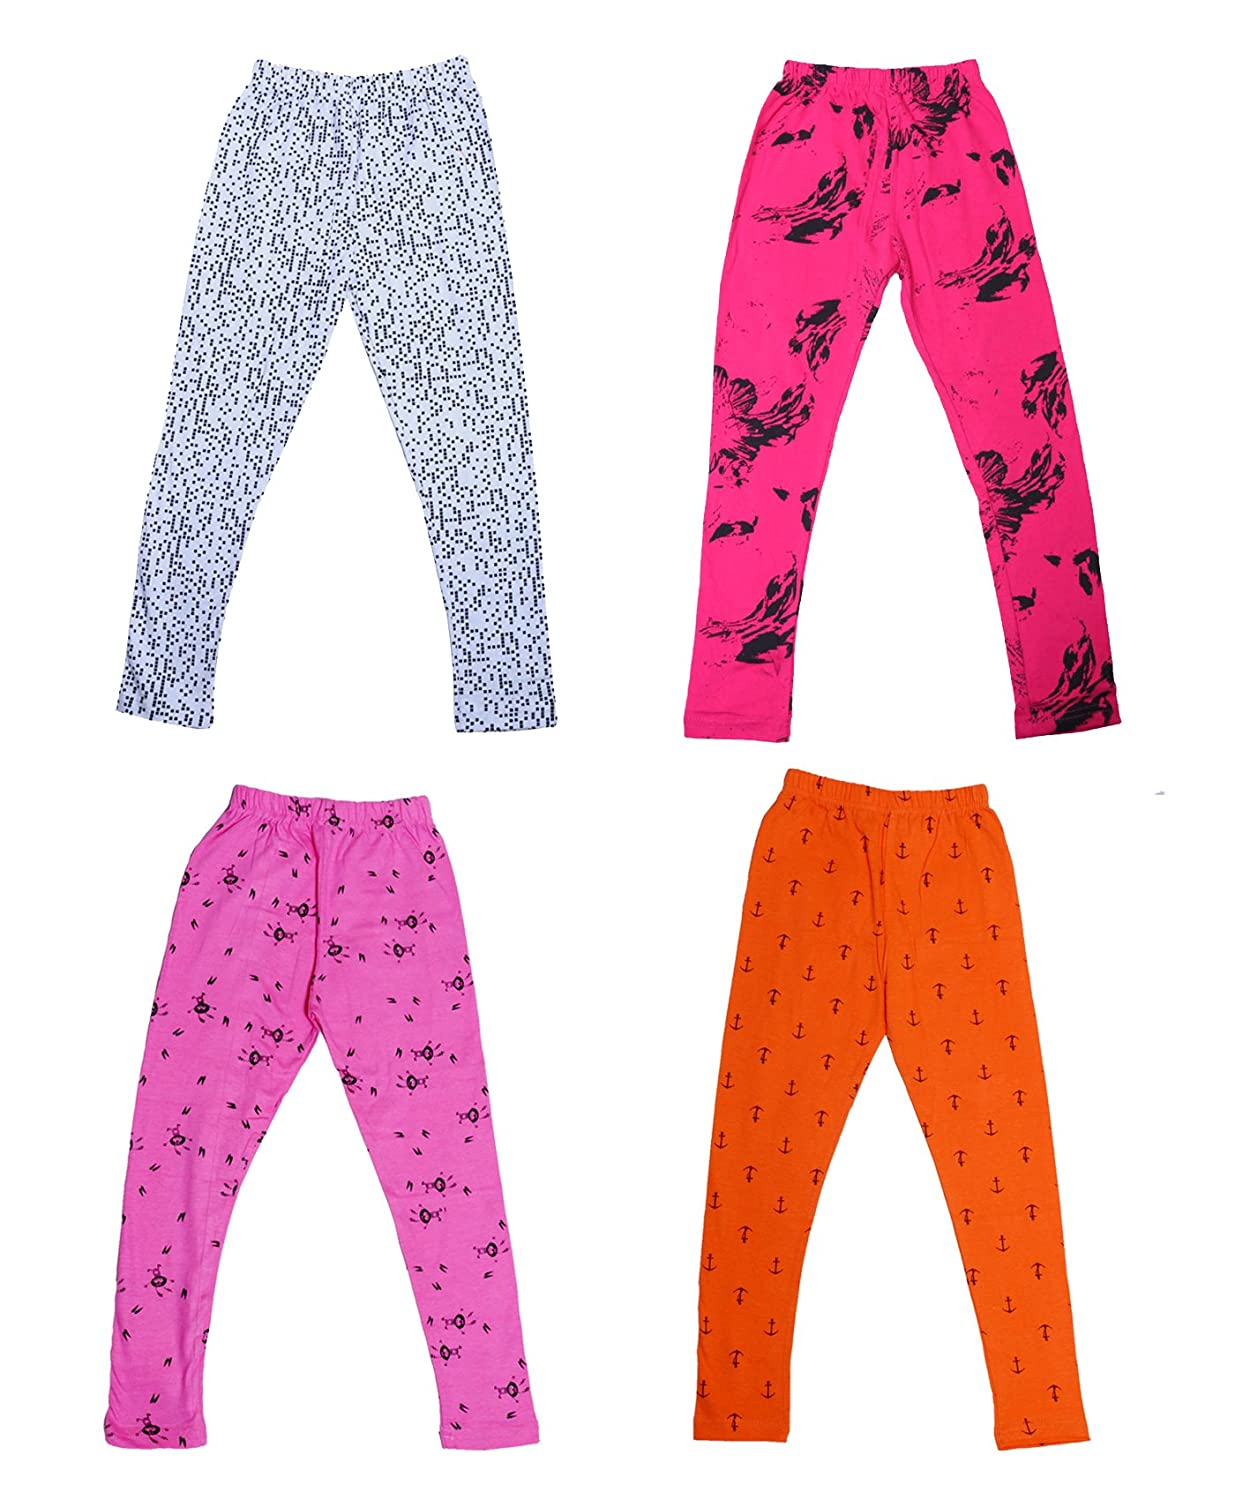 Pack of 4 Indistar Girls Super Soft and Stylish Cotton Printed Legging